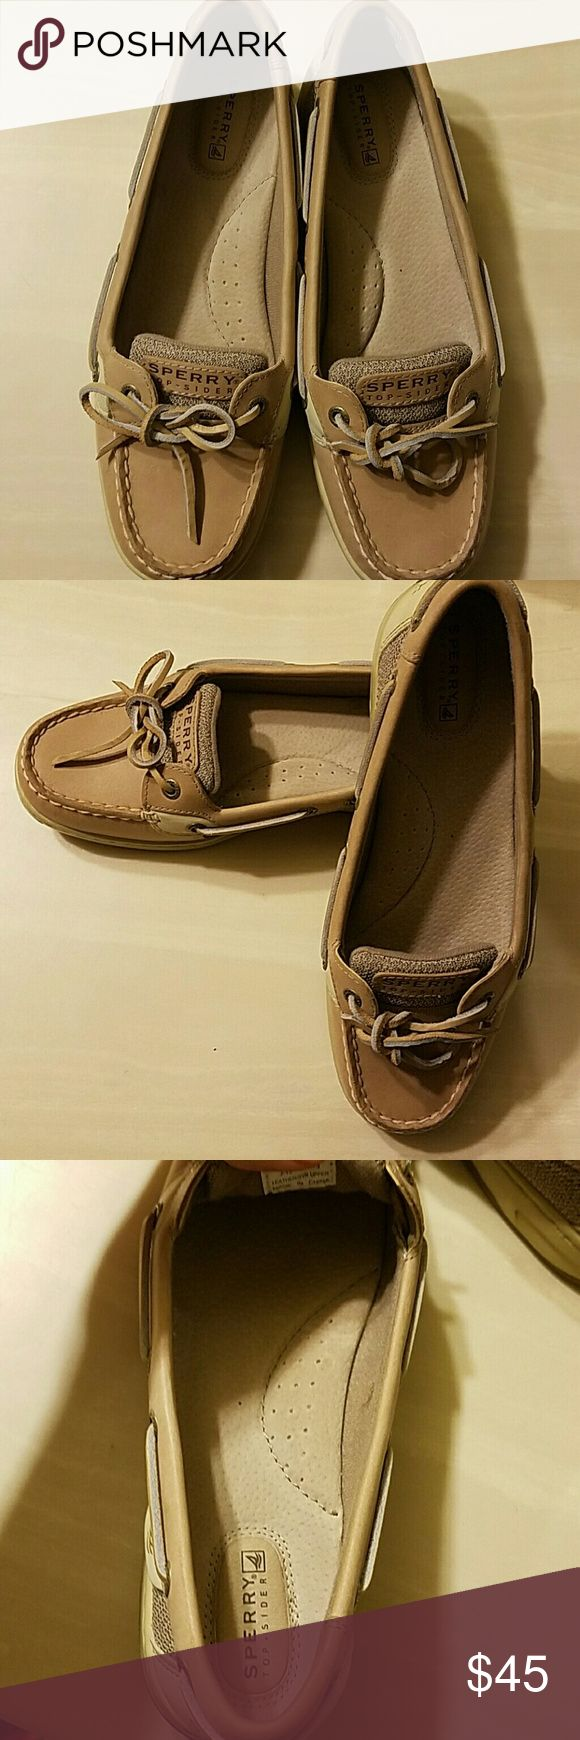 Angelfish sperry top-sider Shoes are like new. I bought them and only wore them once. They aren't really my style. I wore them with socks Sperry Top-Sider Shoes Flats & Loafers